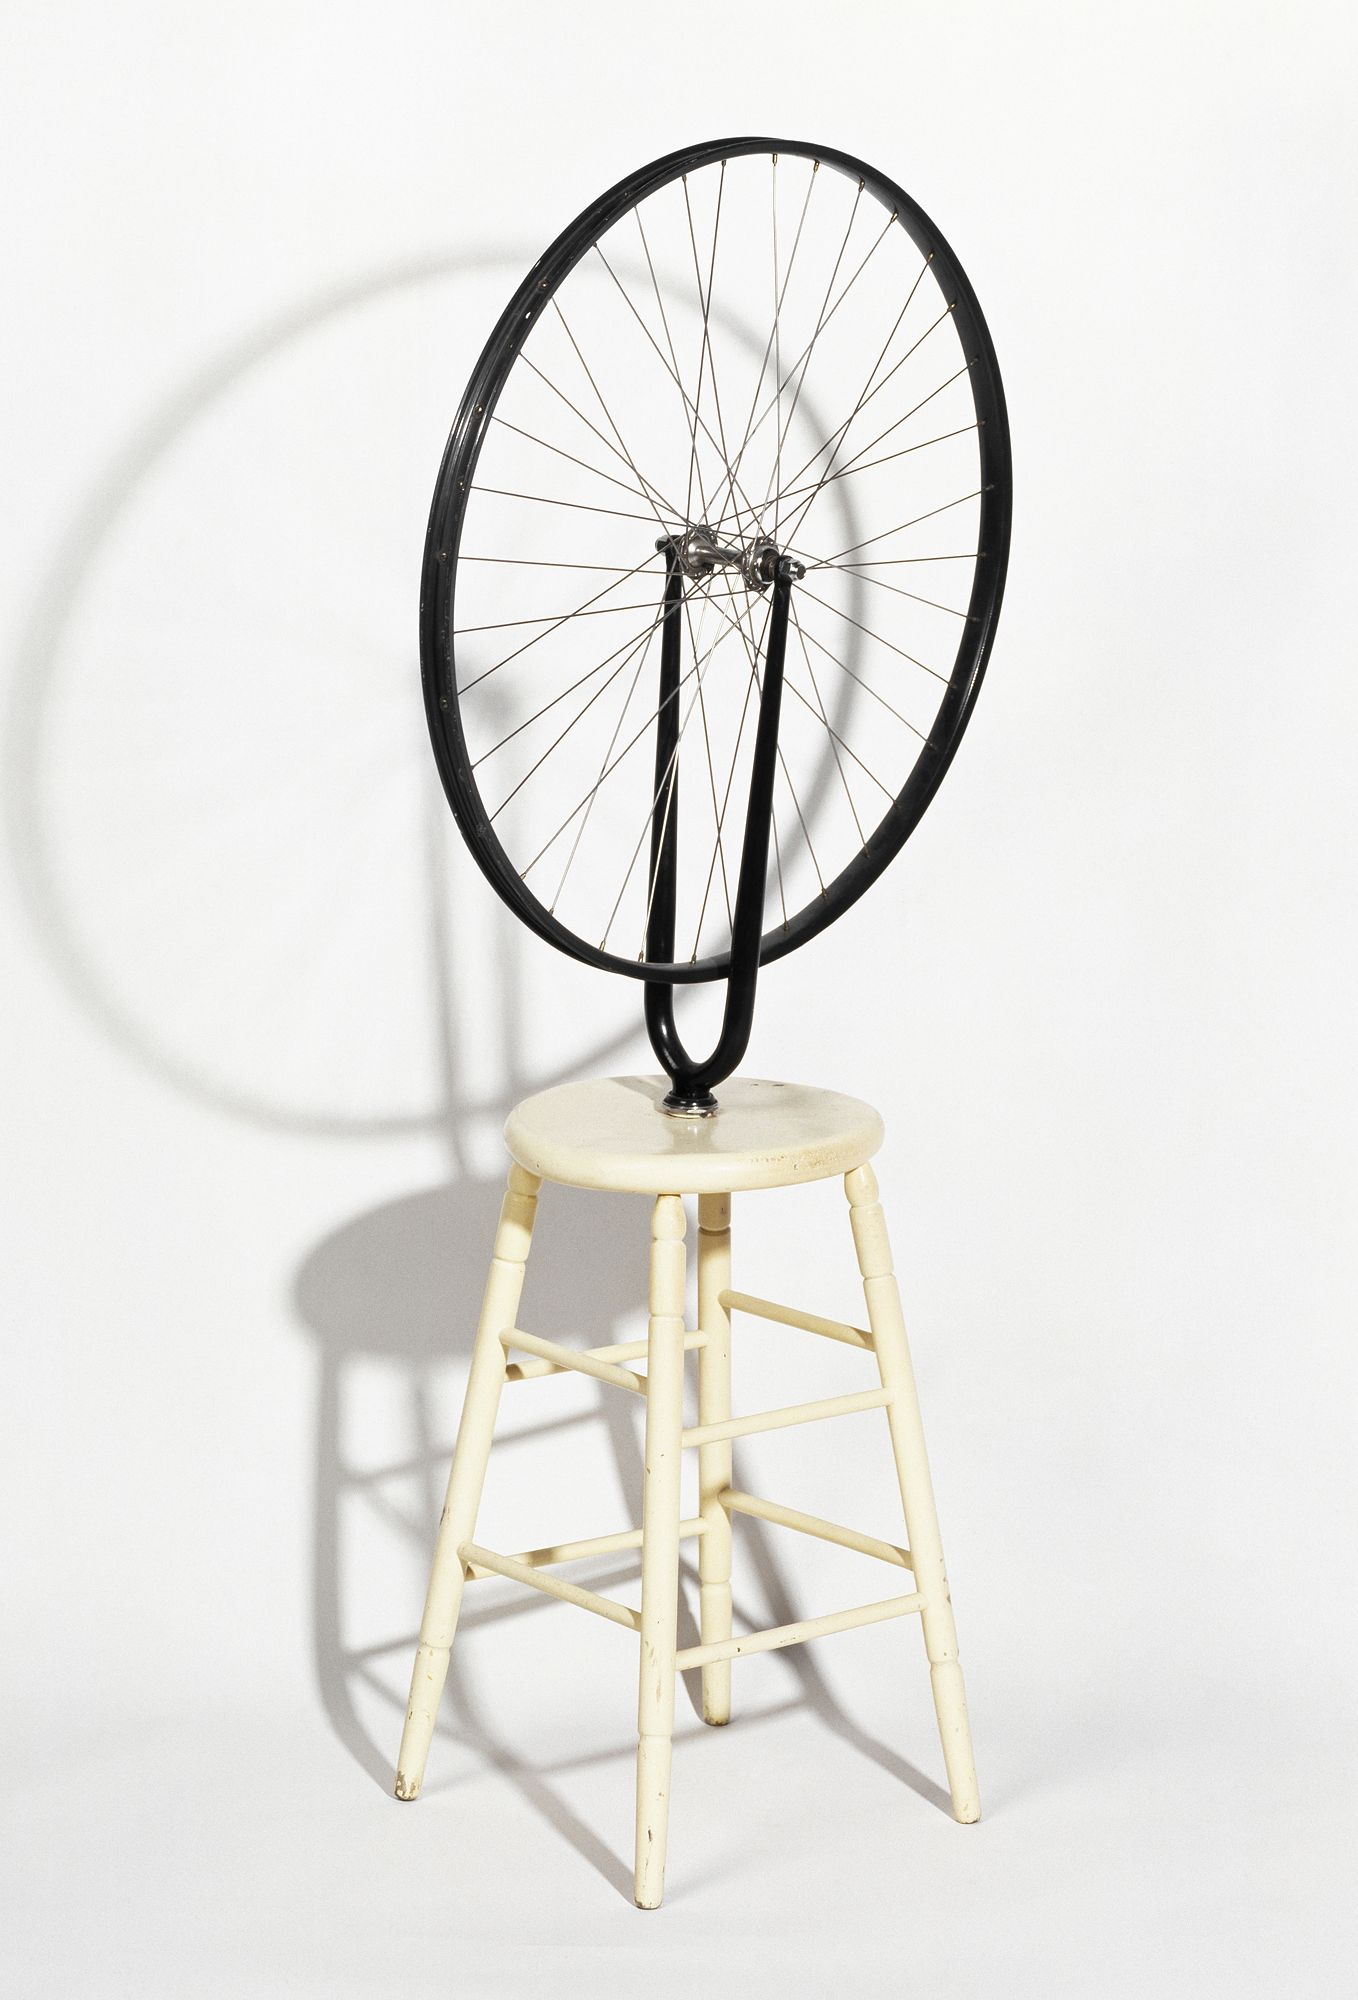 roue de bicyclette marcel duchamp 1887 1968. Black Bedroom Furniture Sets. Home Design Ideas